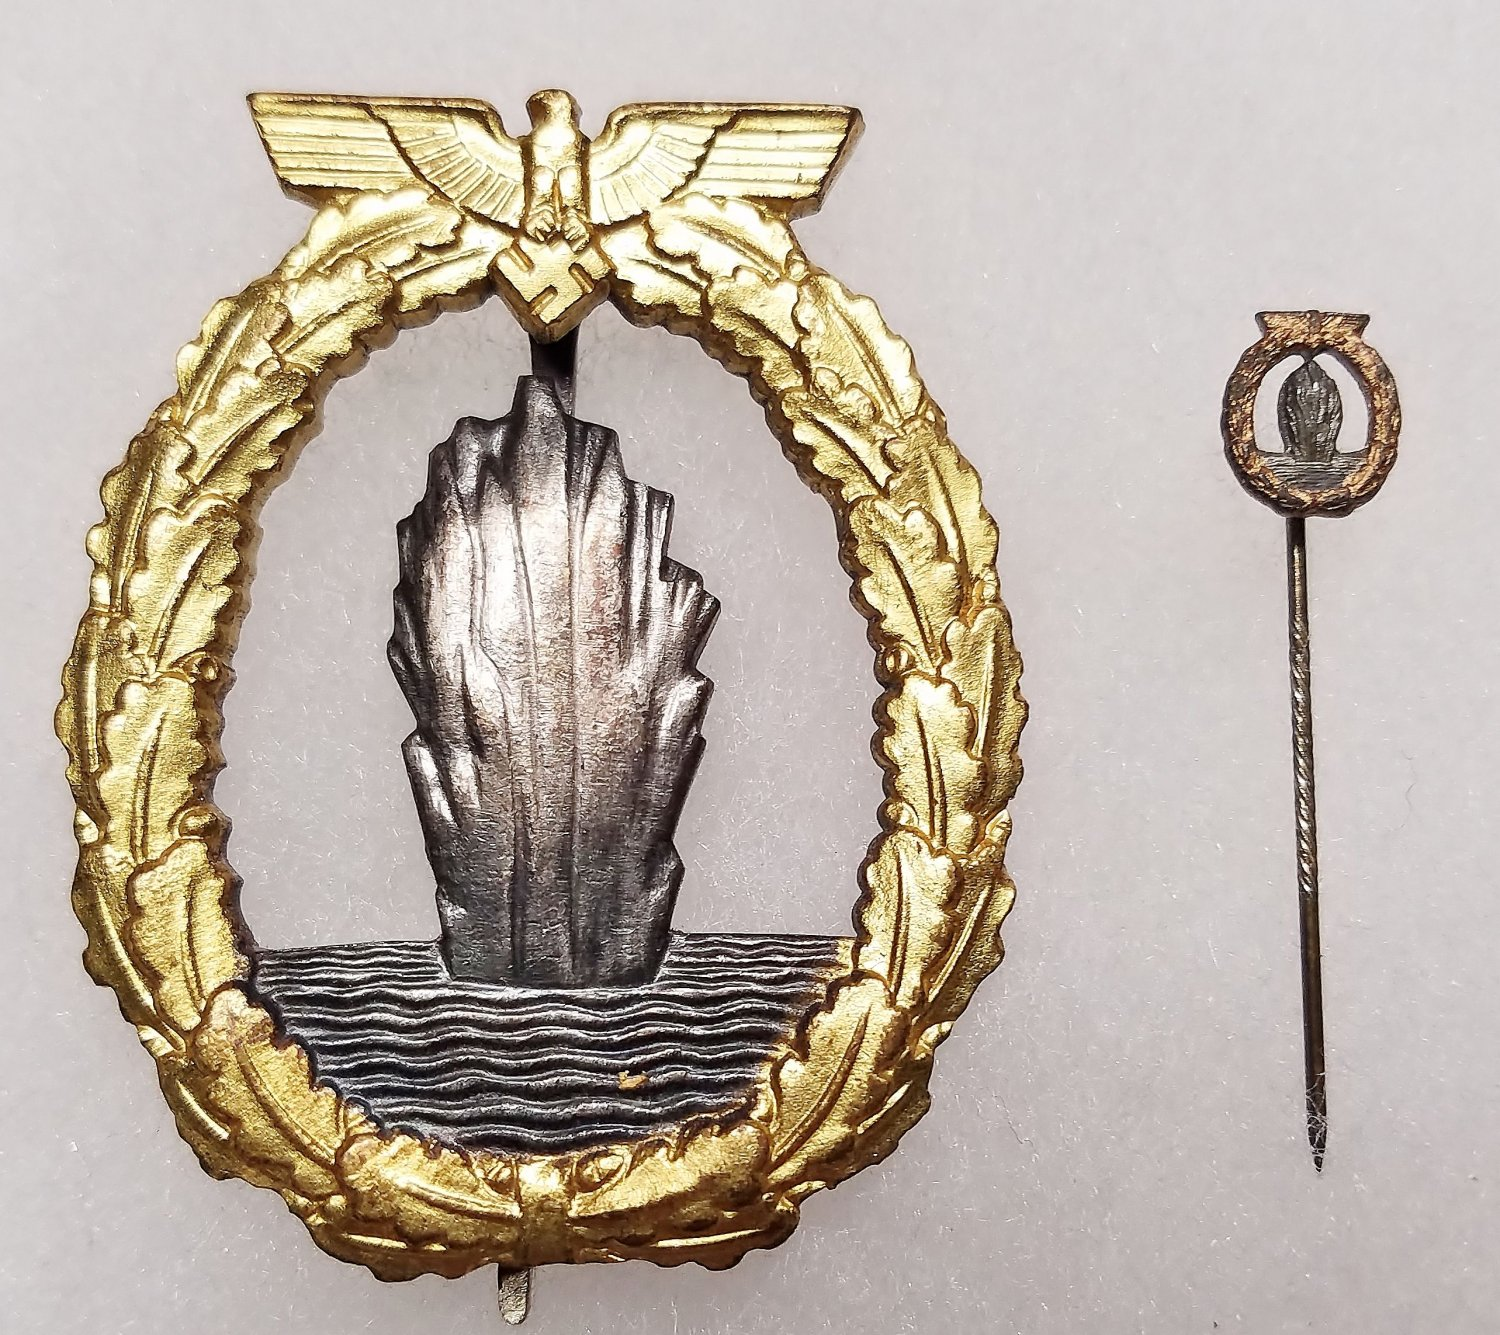 WWII WW2 GERMAN NAZI KRIEGSMARINE MINESWEEPER BADGE W/ STICKPIN